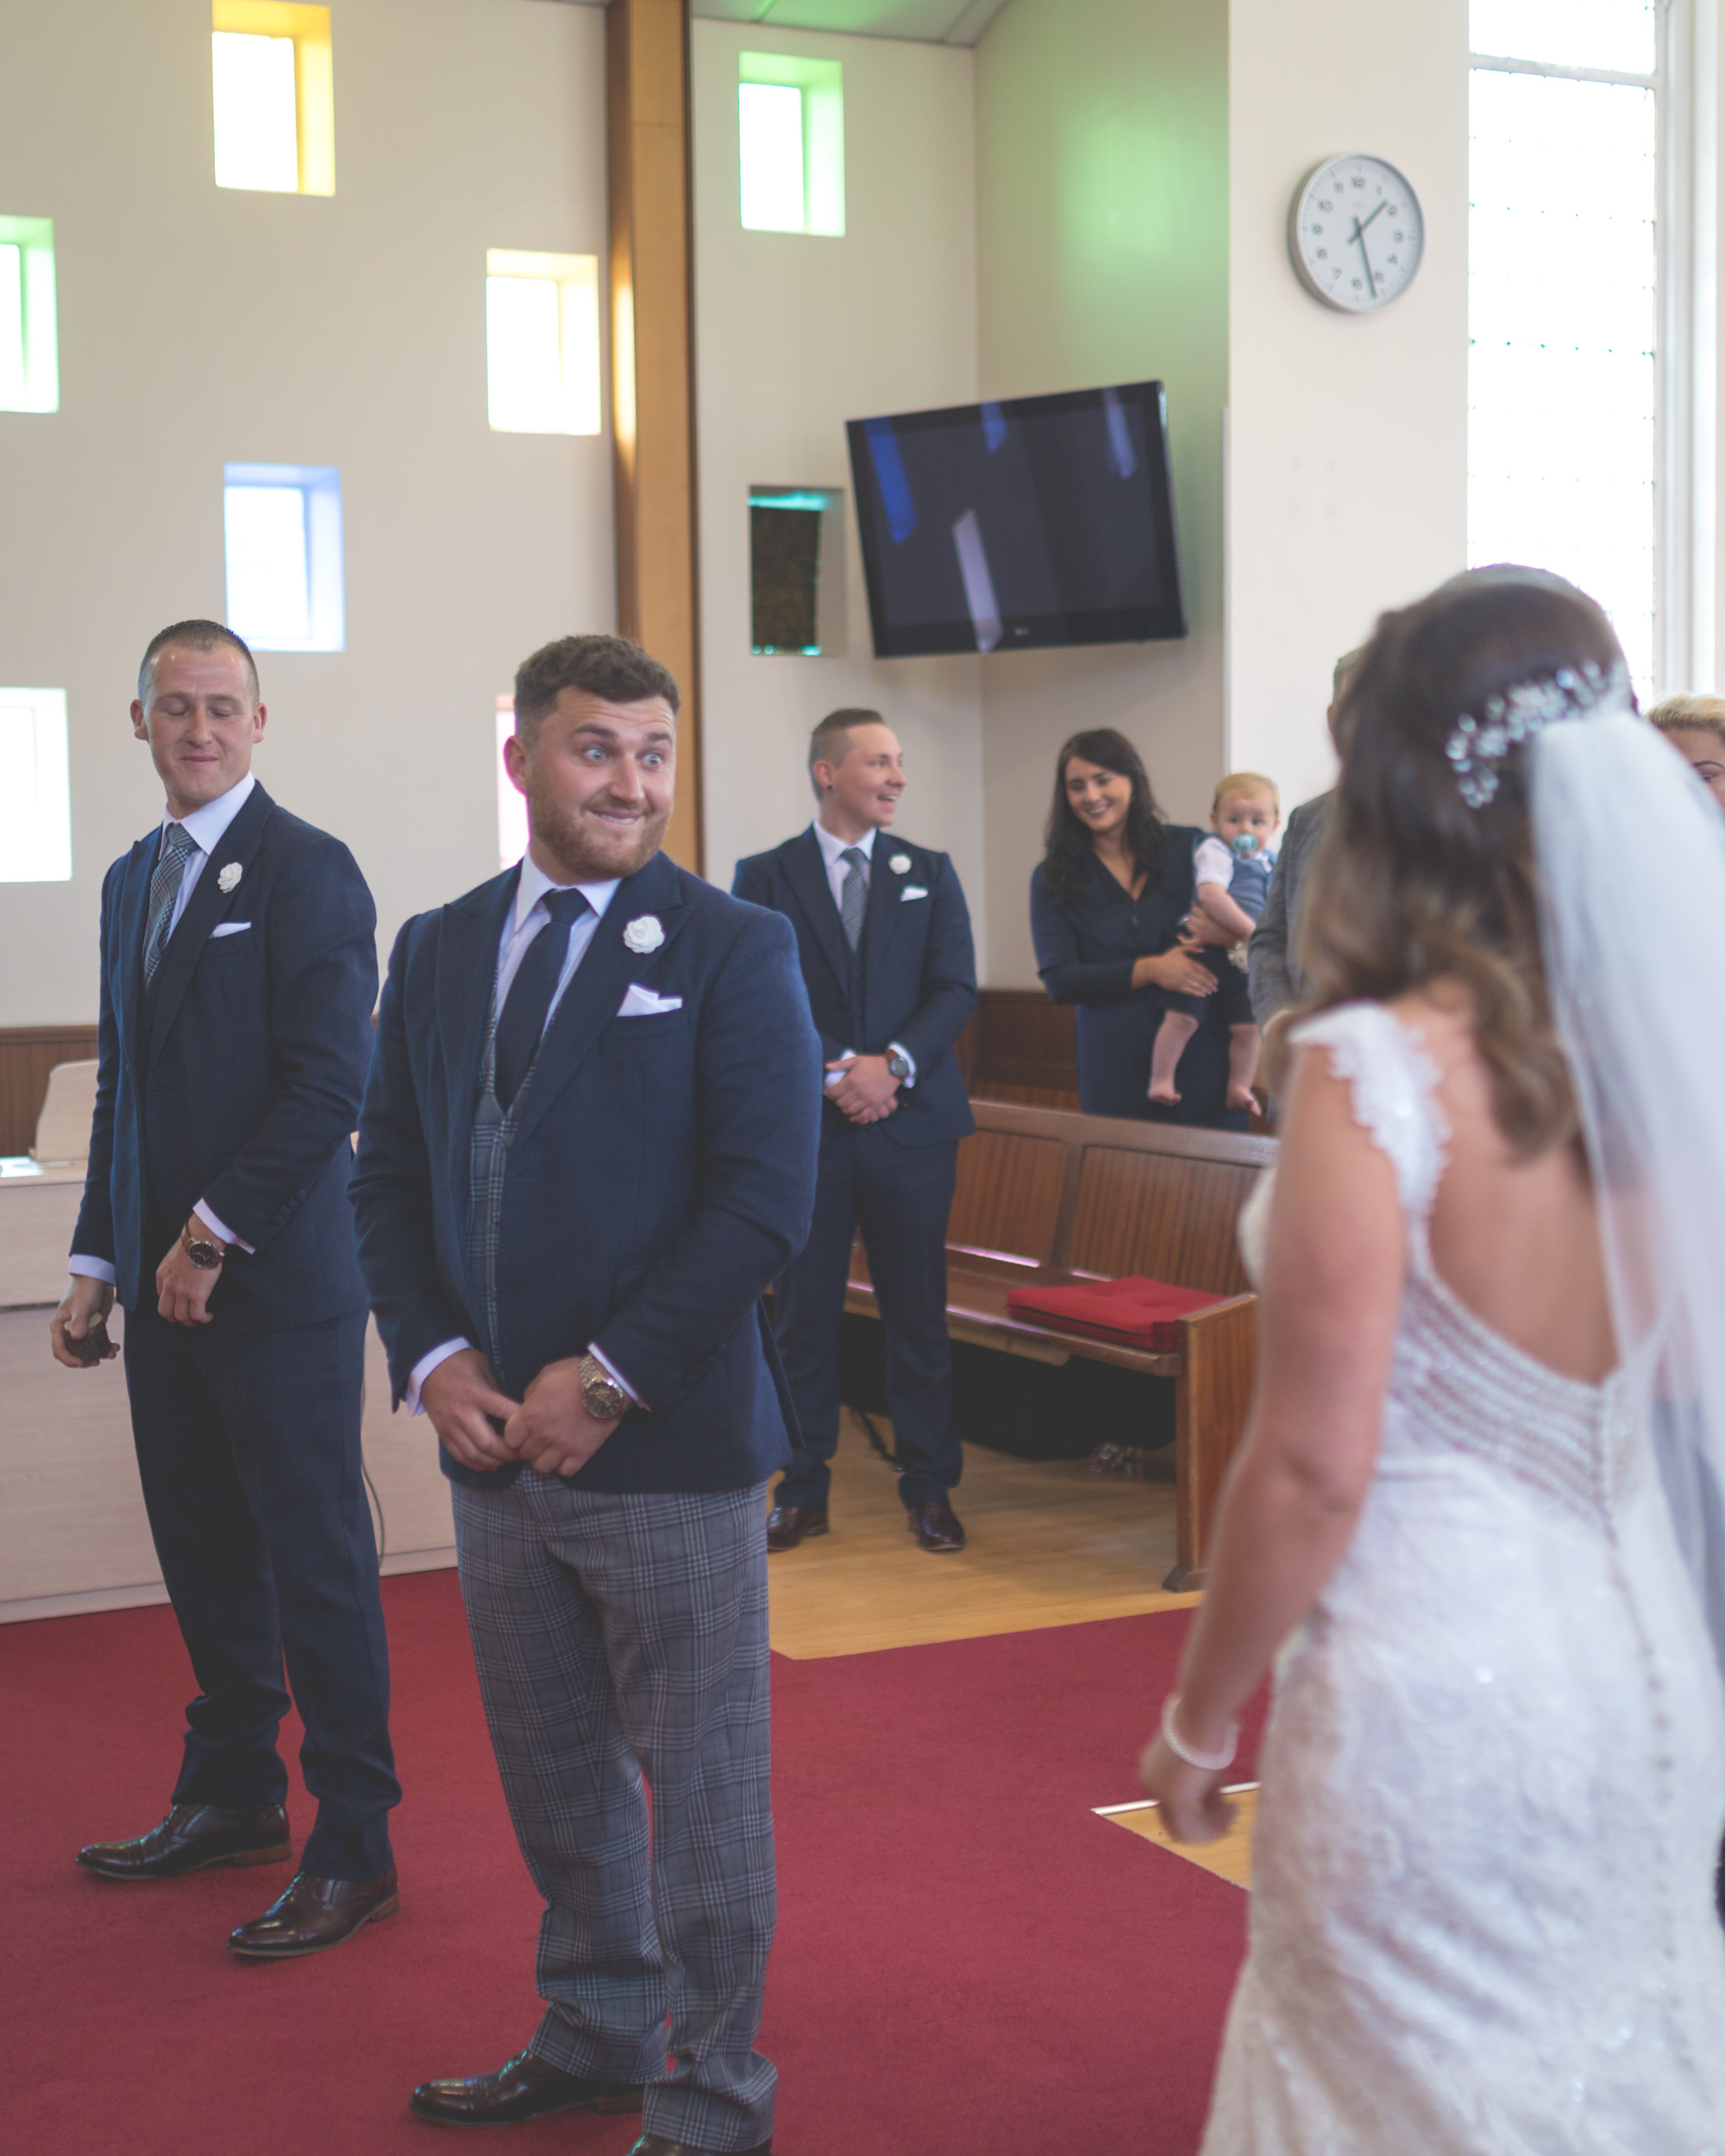 Brian McEwan | Northern Ireland Wedding Photographer | Rebecca & Michael | Ceremony-25.jpg